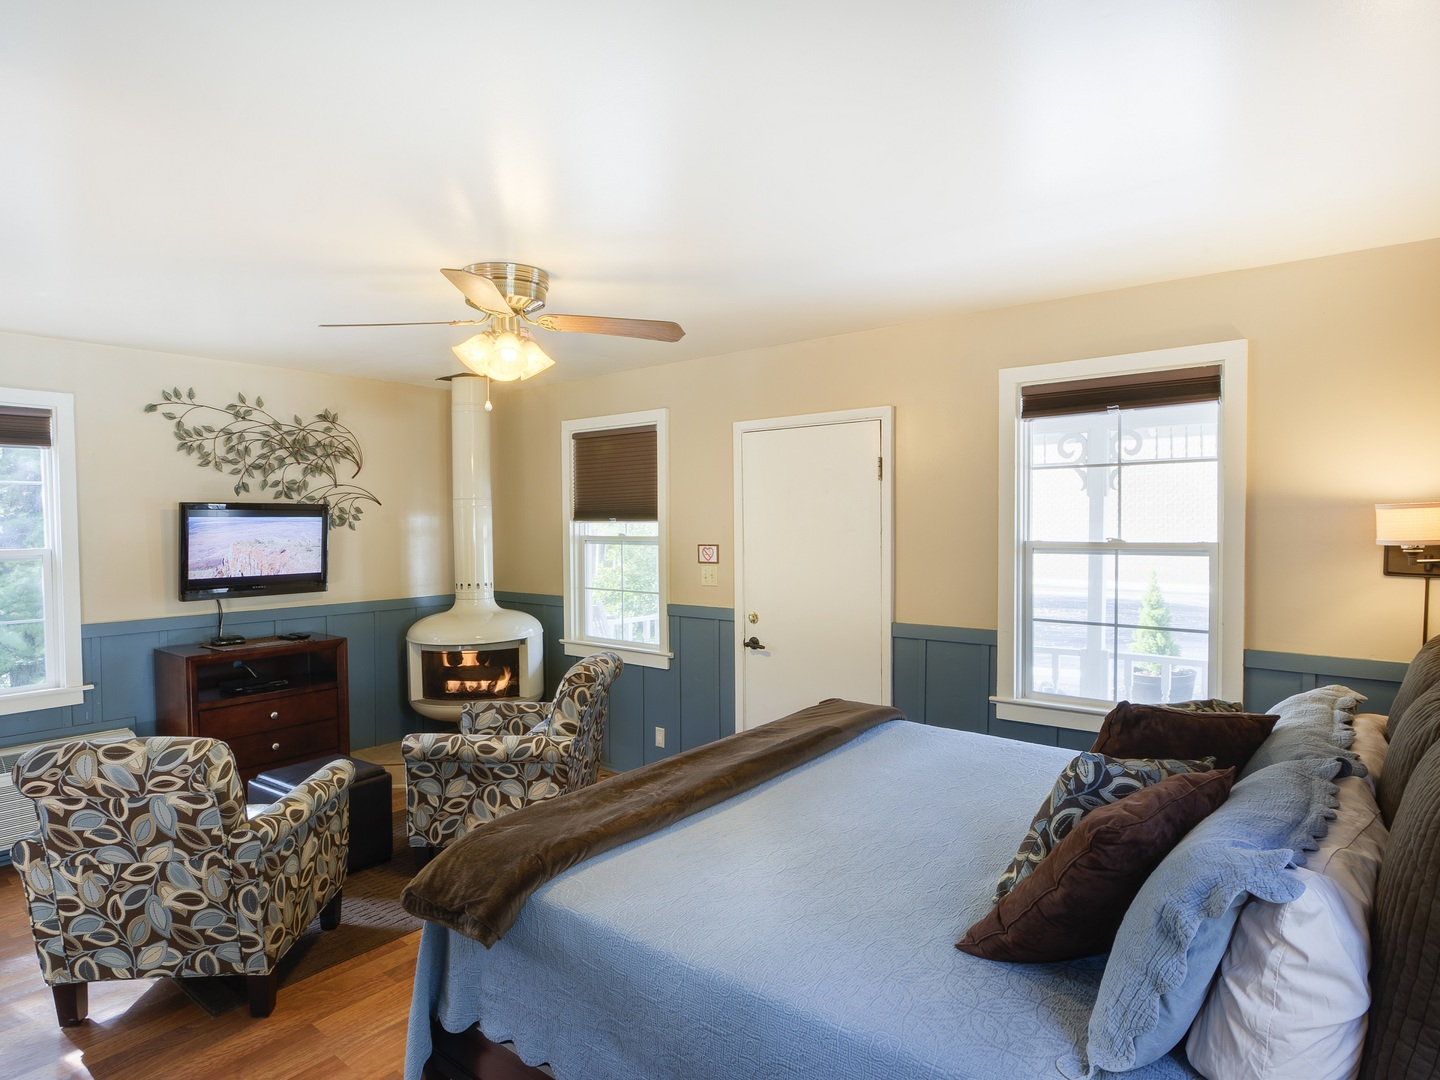 A living room filled with furniture and a fireplace at Prescott Pines Inn B&B.